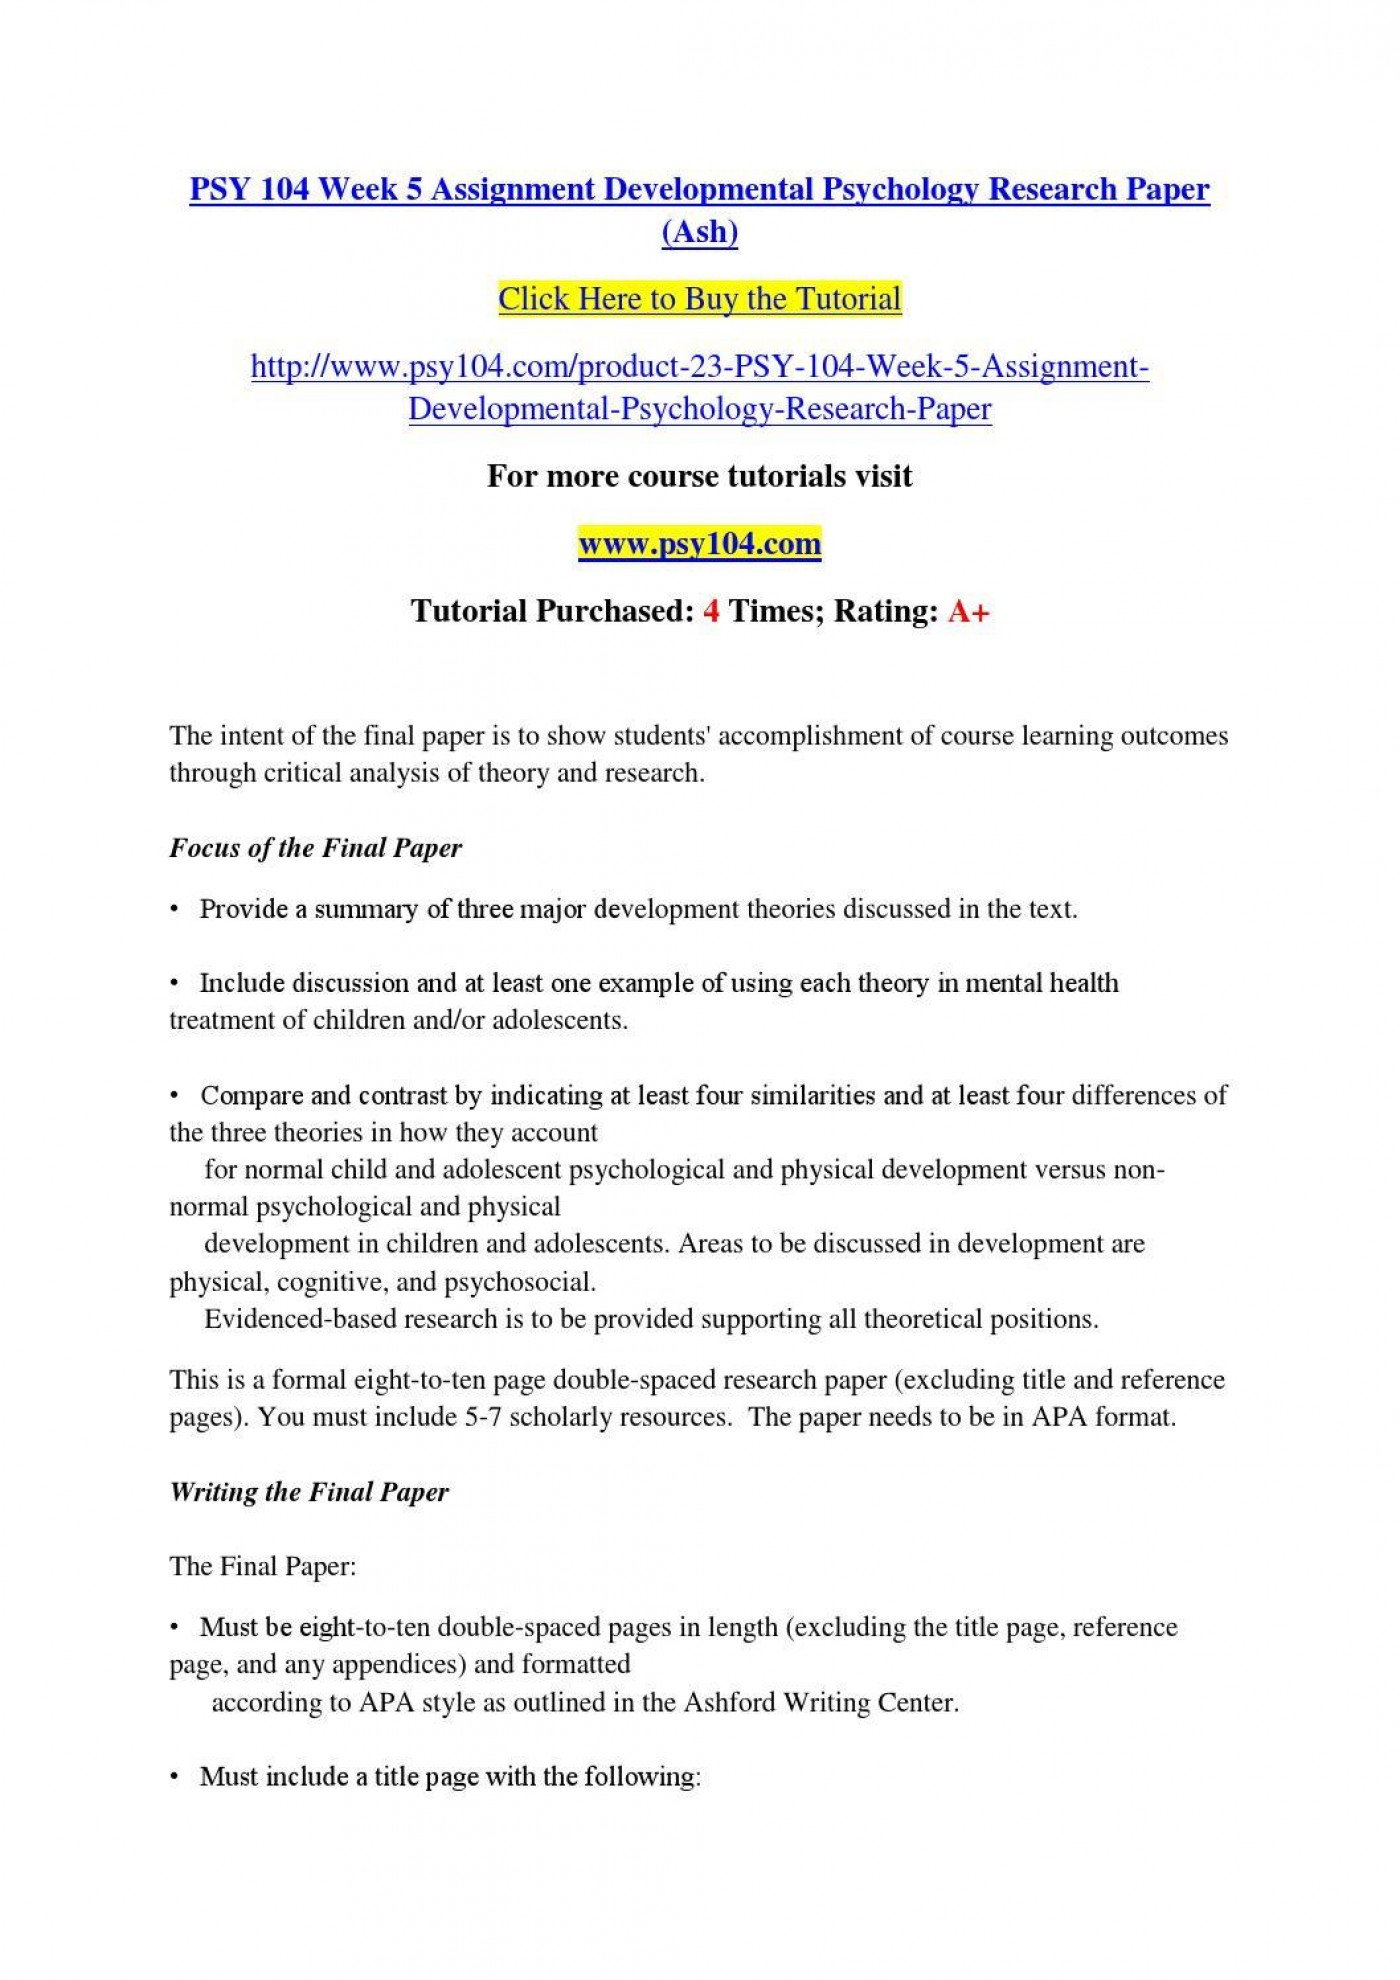 019 Psychology Research Paper Topics List Developmental Essay Ideas Structure Psychological20ent Awesome Topic 1400